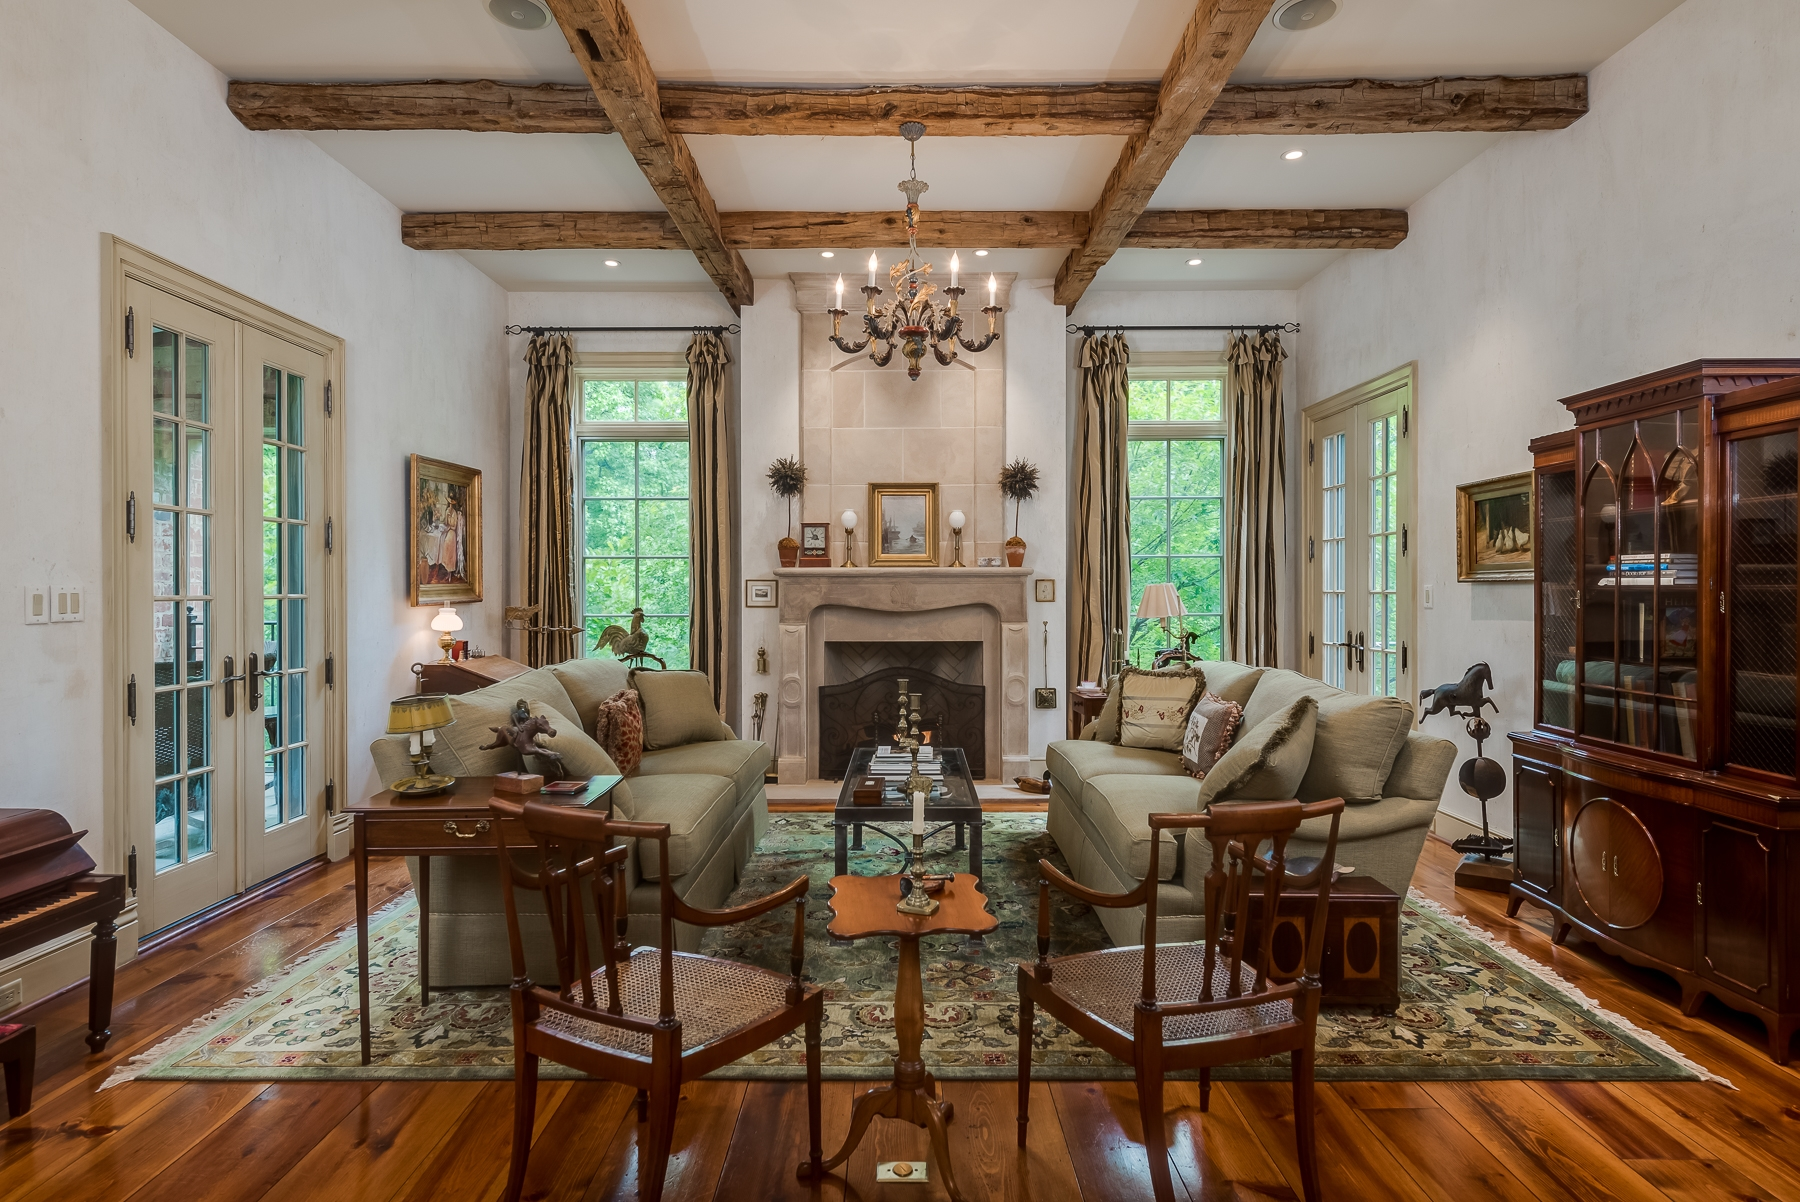 Photographs of a home on Oakleigh Lane in Ladue, Missouri for Dielmann Sotheby's International Realty agent Ted Wight